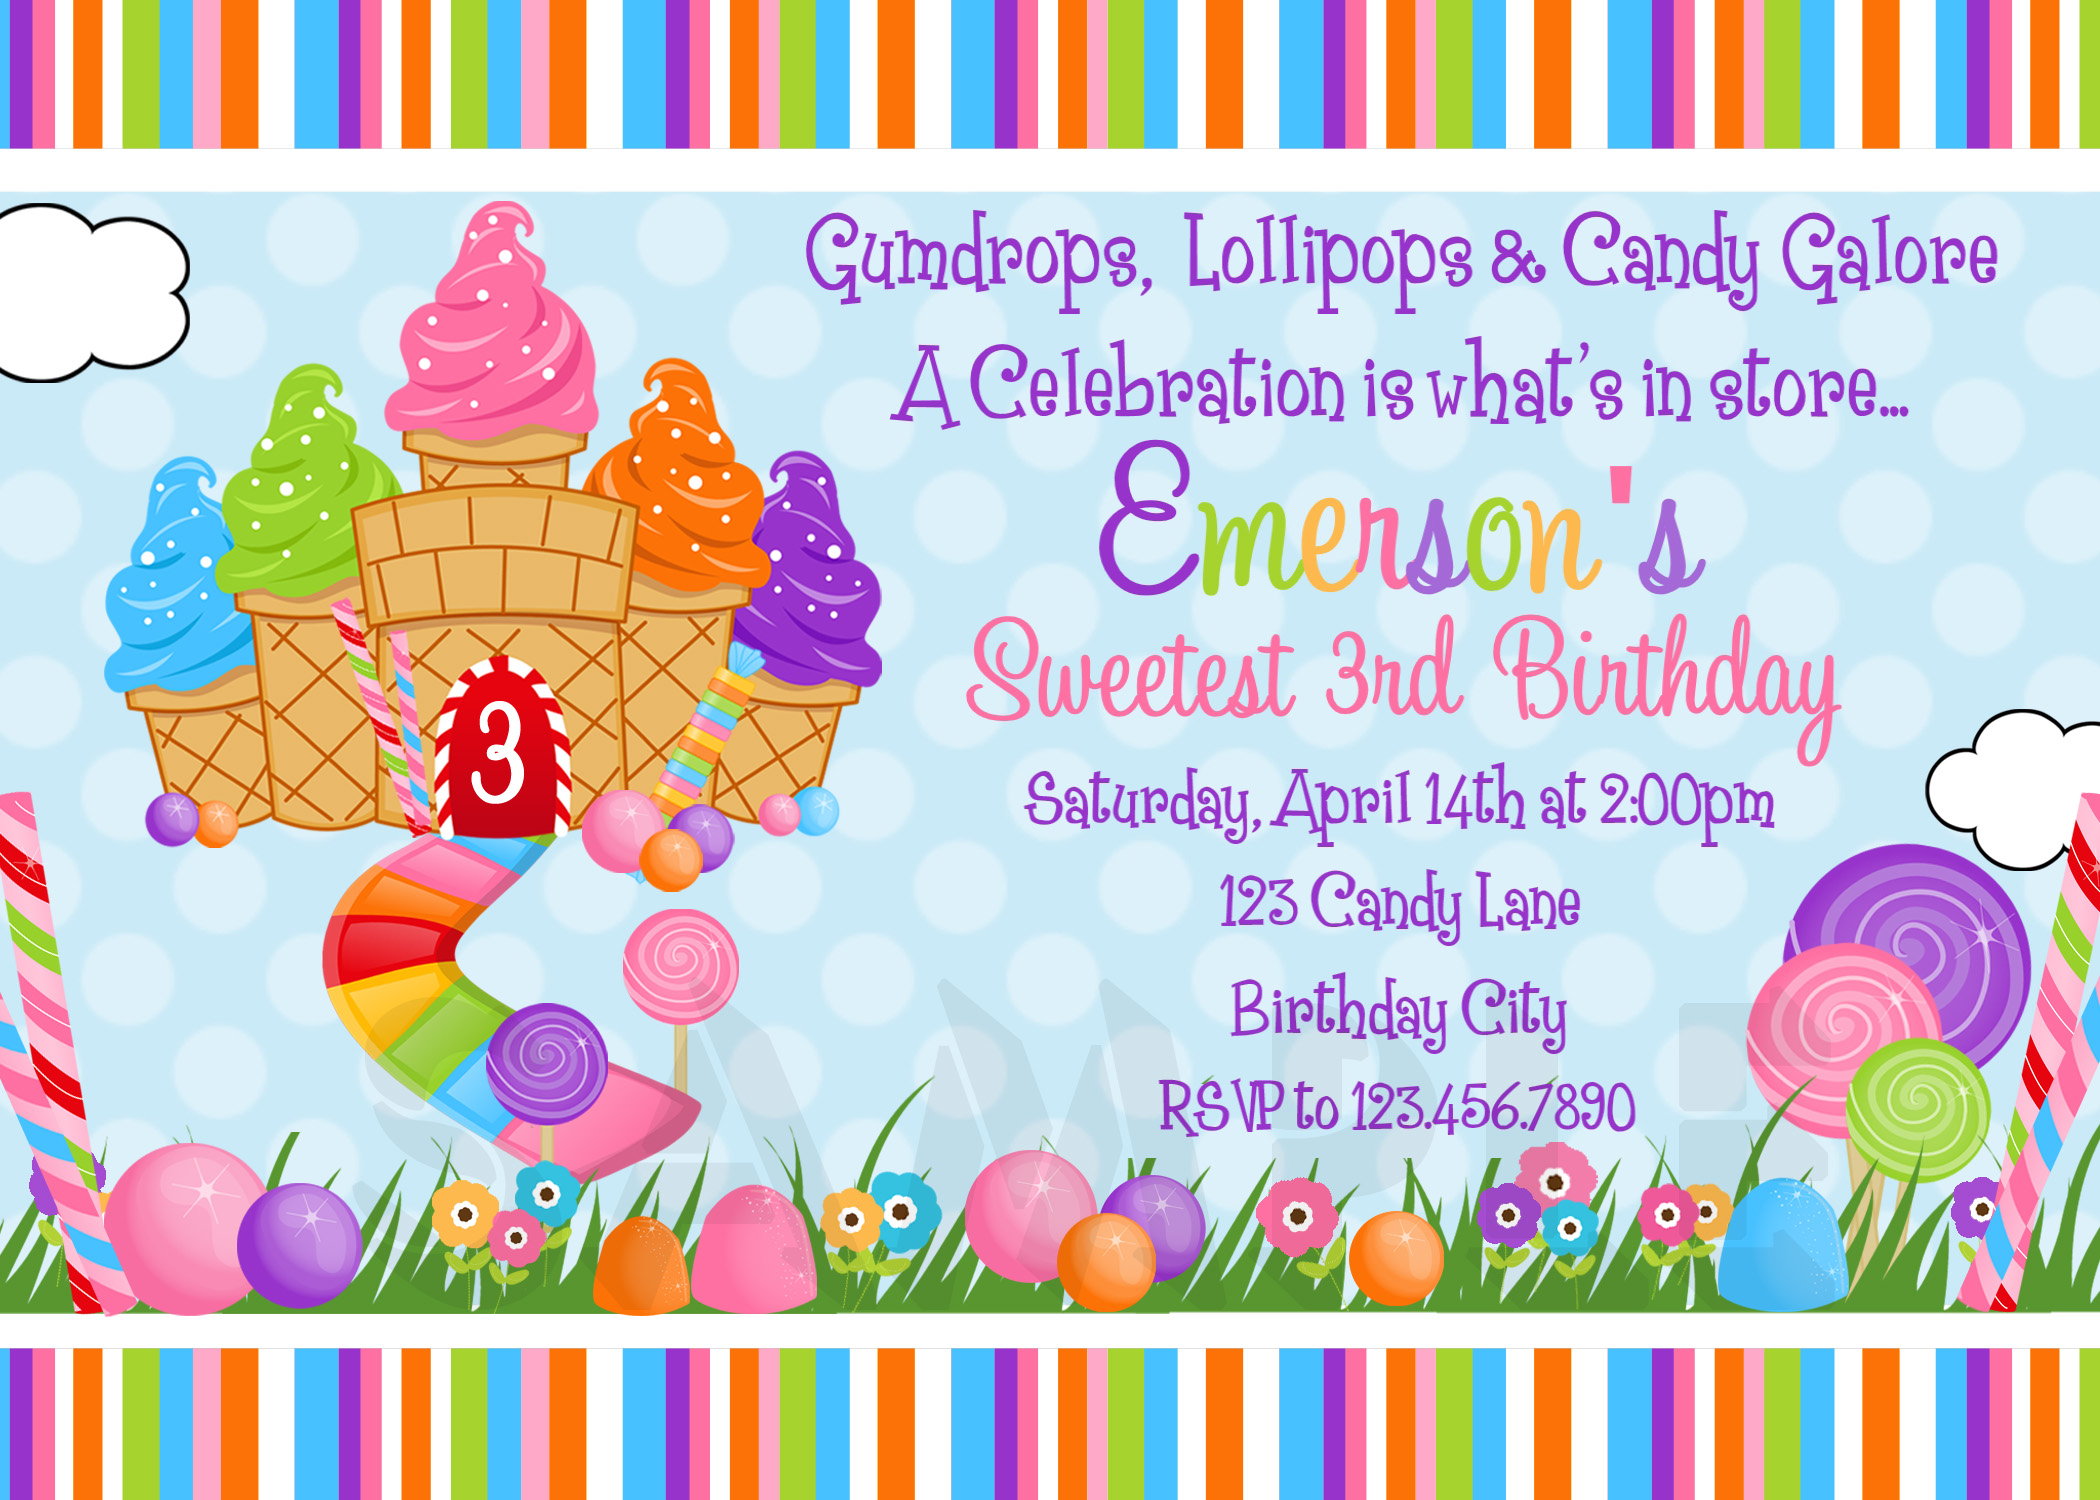 printable birthday invitations, girls candyland party,, Party invitations